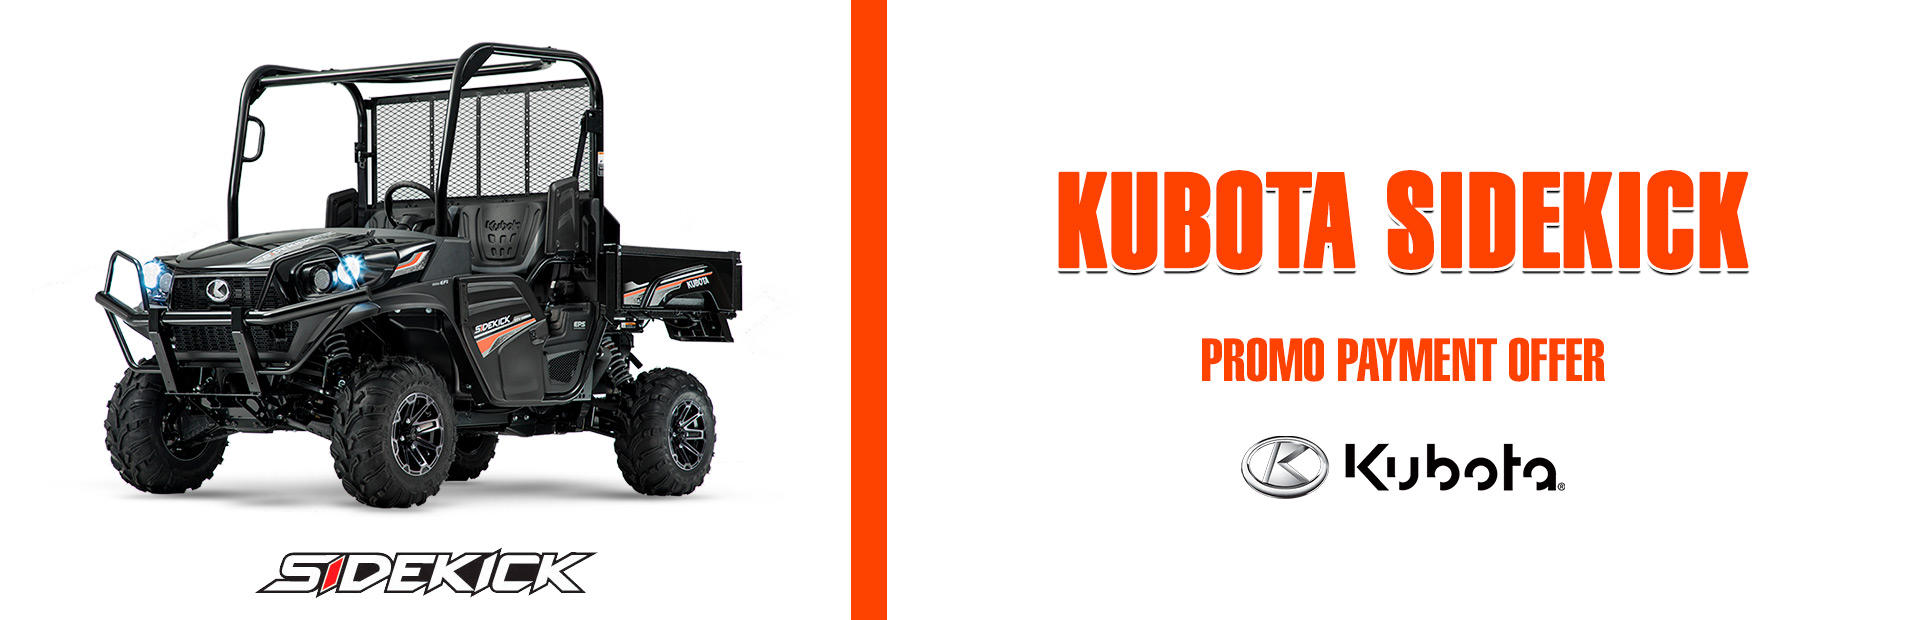 Kubota: KUBOTA SIDEKICK - PROMO PAYMENT OFFER